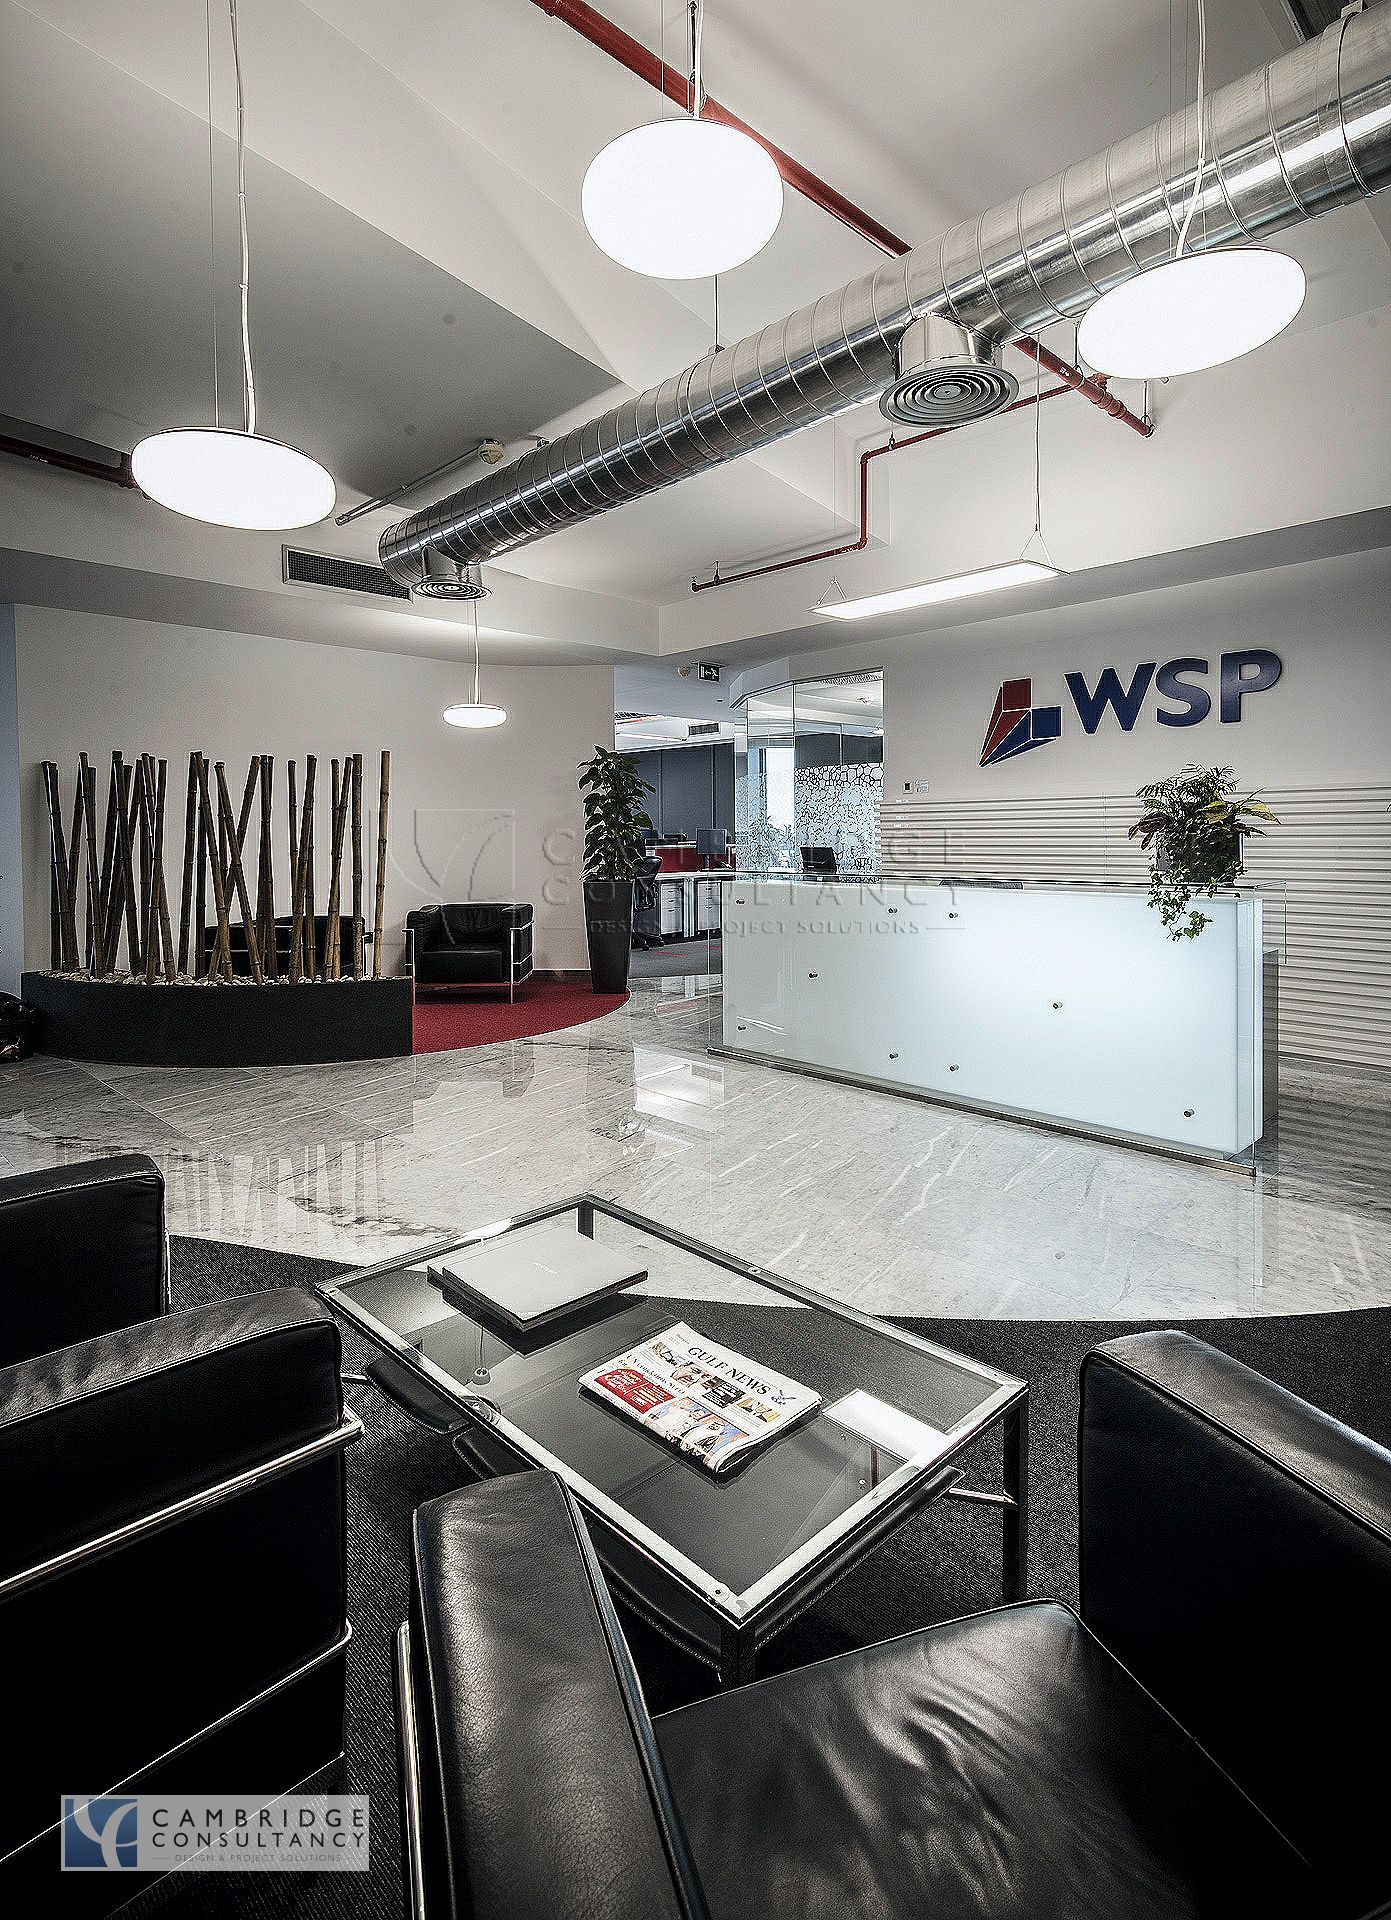 WSP office Modern design, open ceiling, industrial aluminium spiral